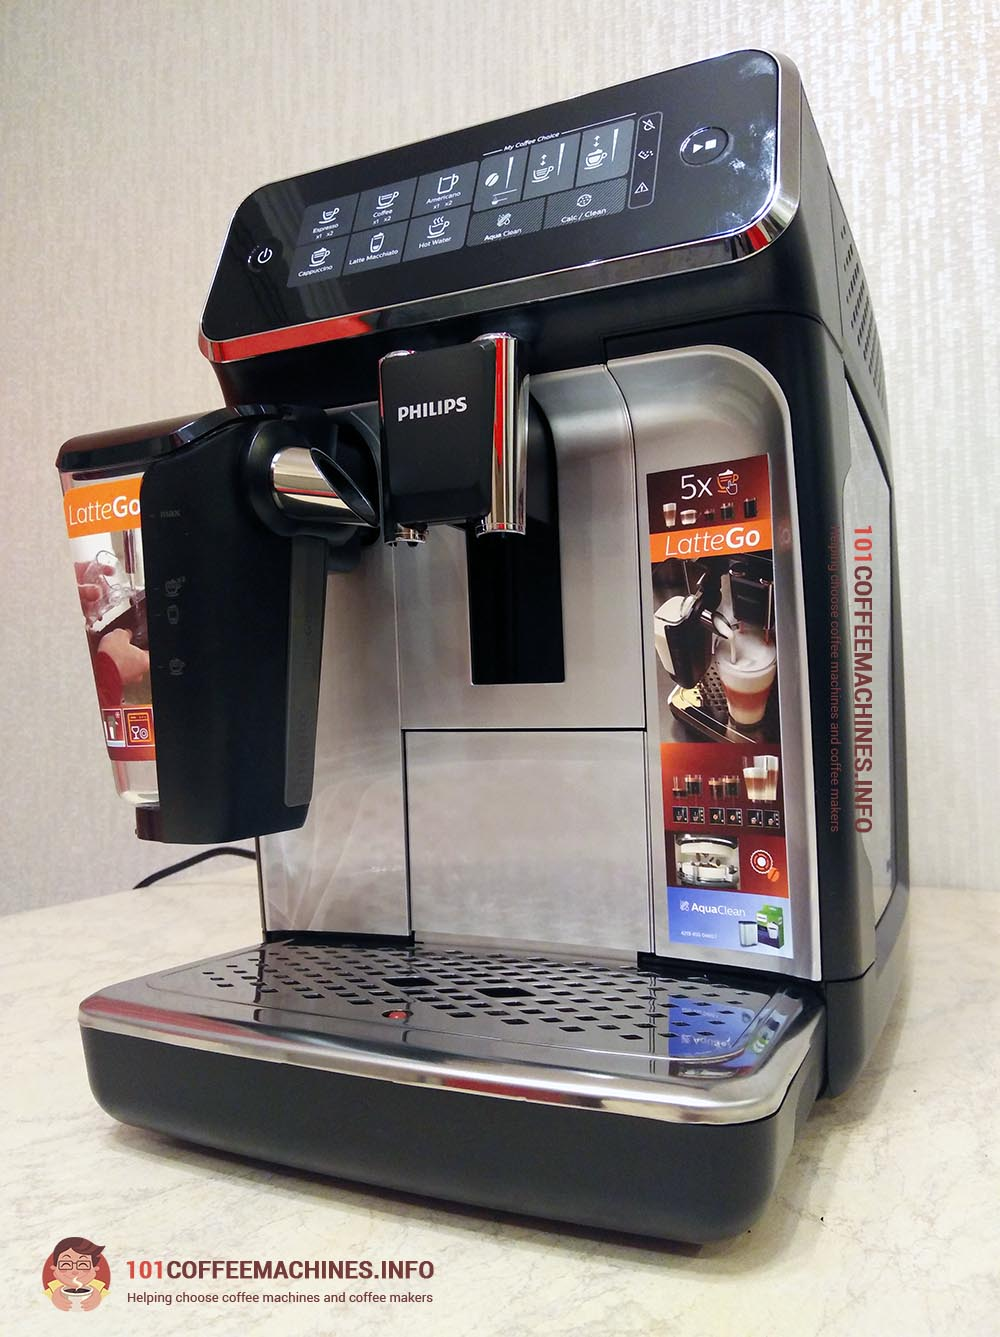 Philips Ep3200ep2200ep1200 Series Espresso Machines Review